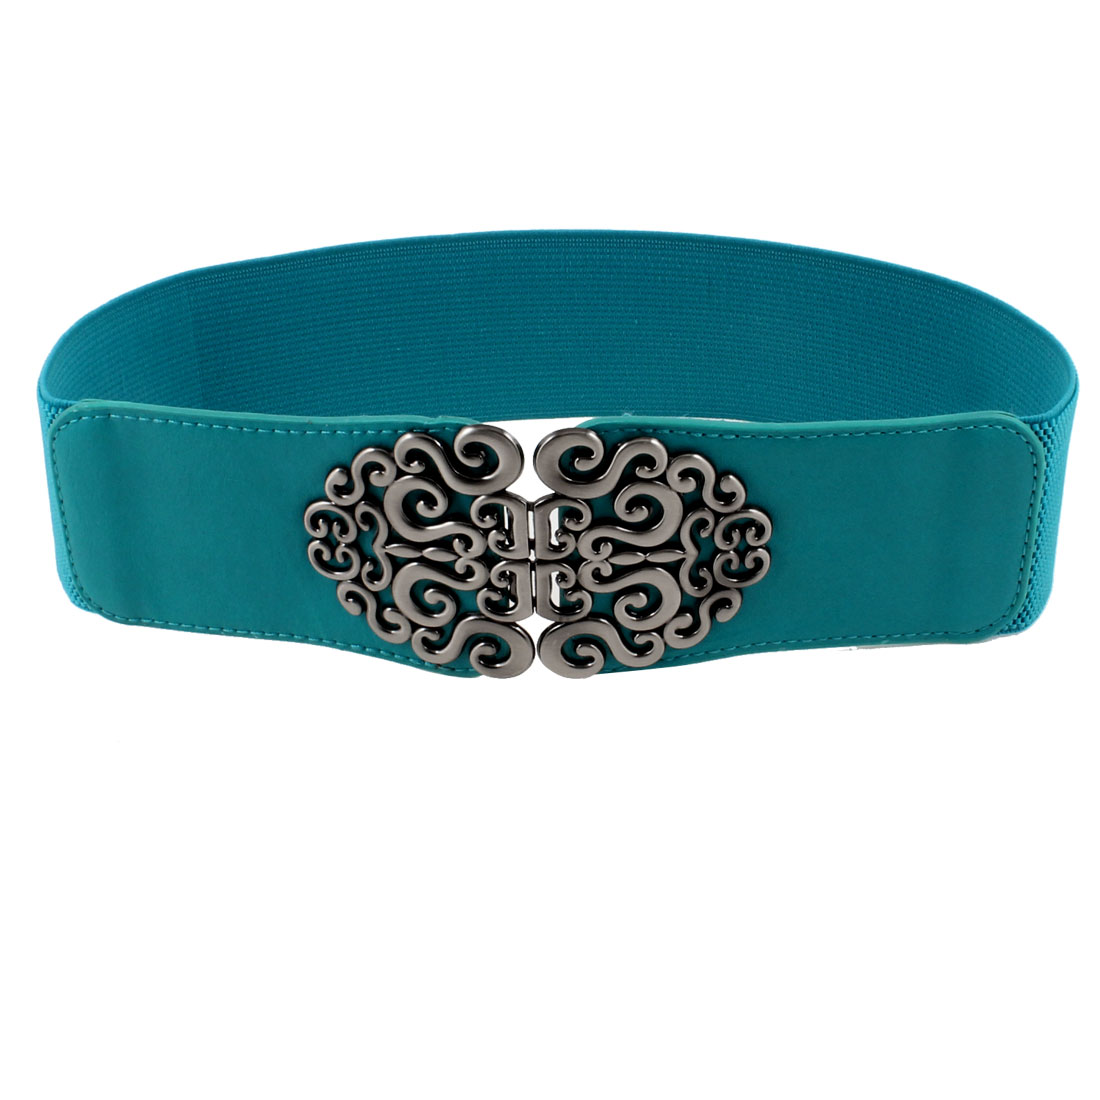 Lady Metal Symmetric Flower Interlock Buckle Textured Elastic Cinch Belt Teal Blue